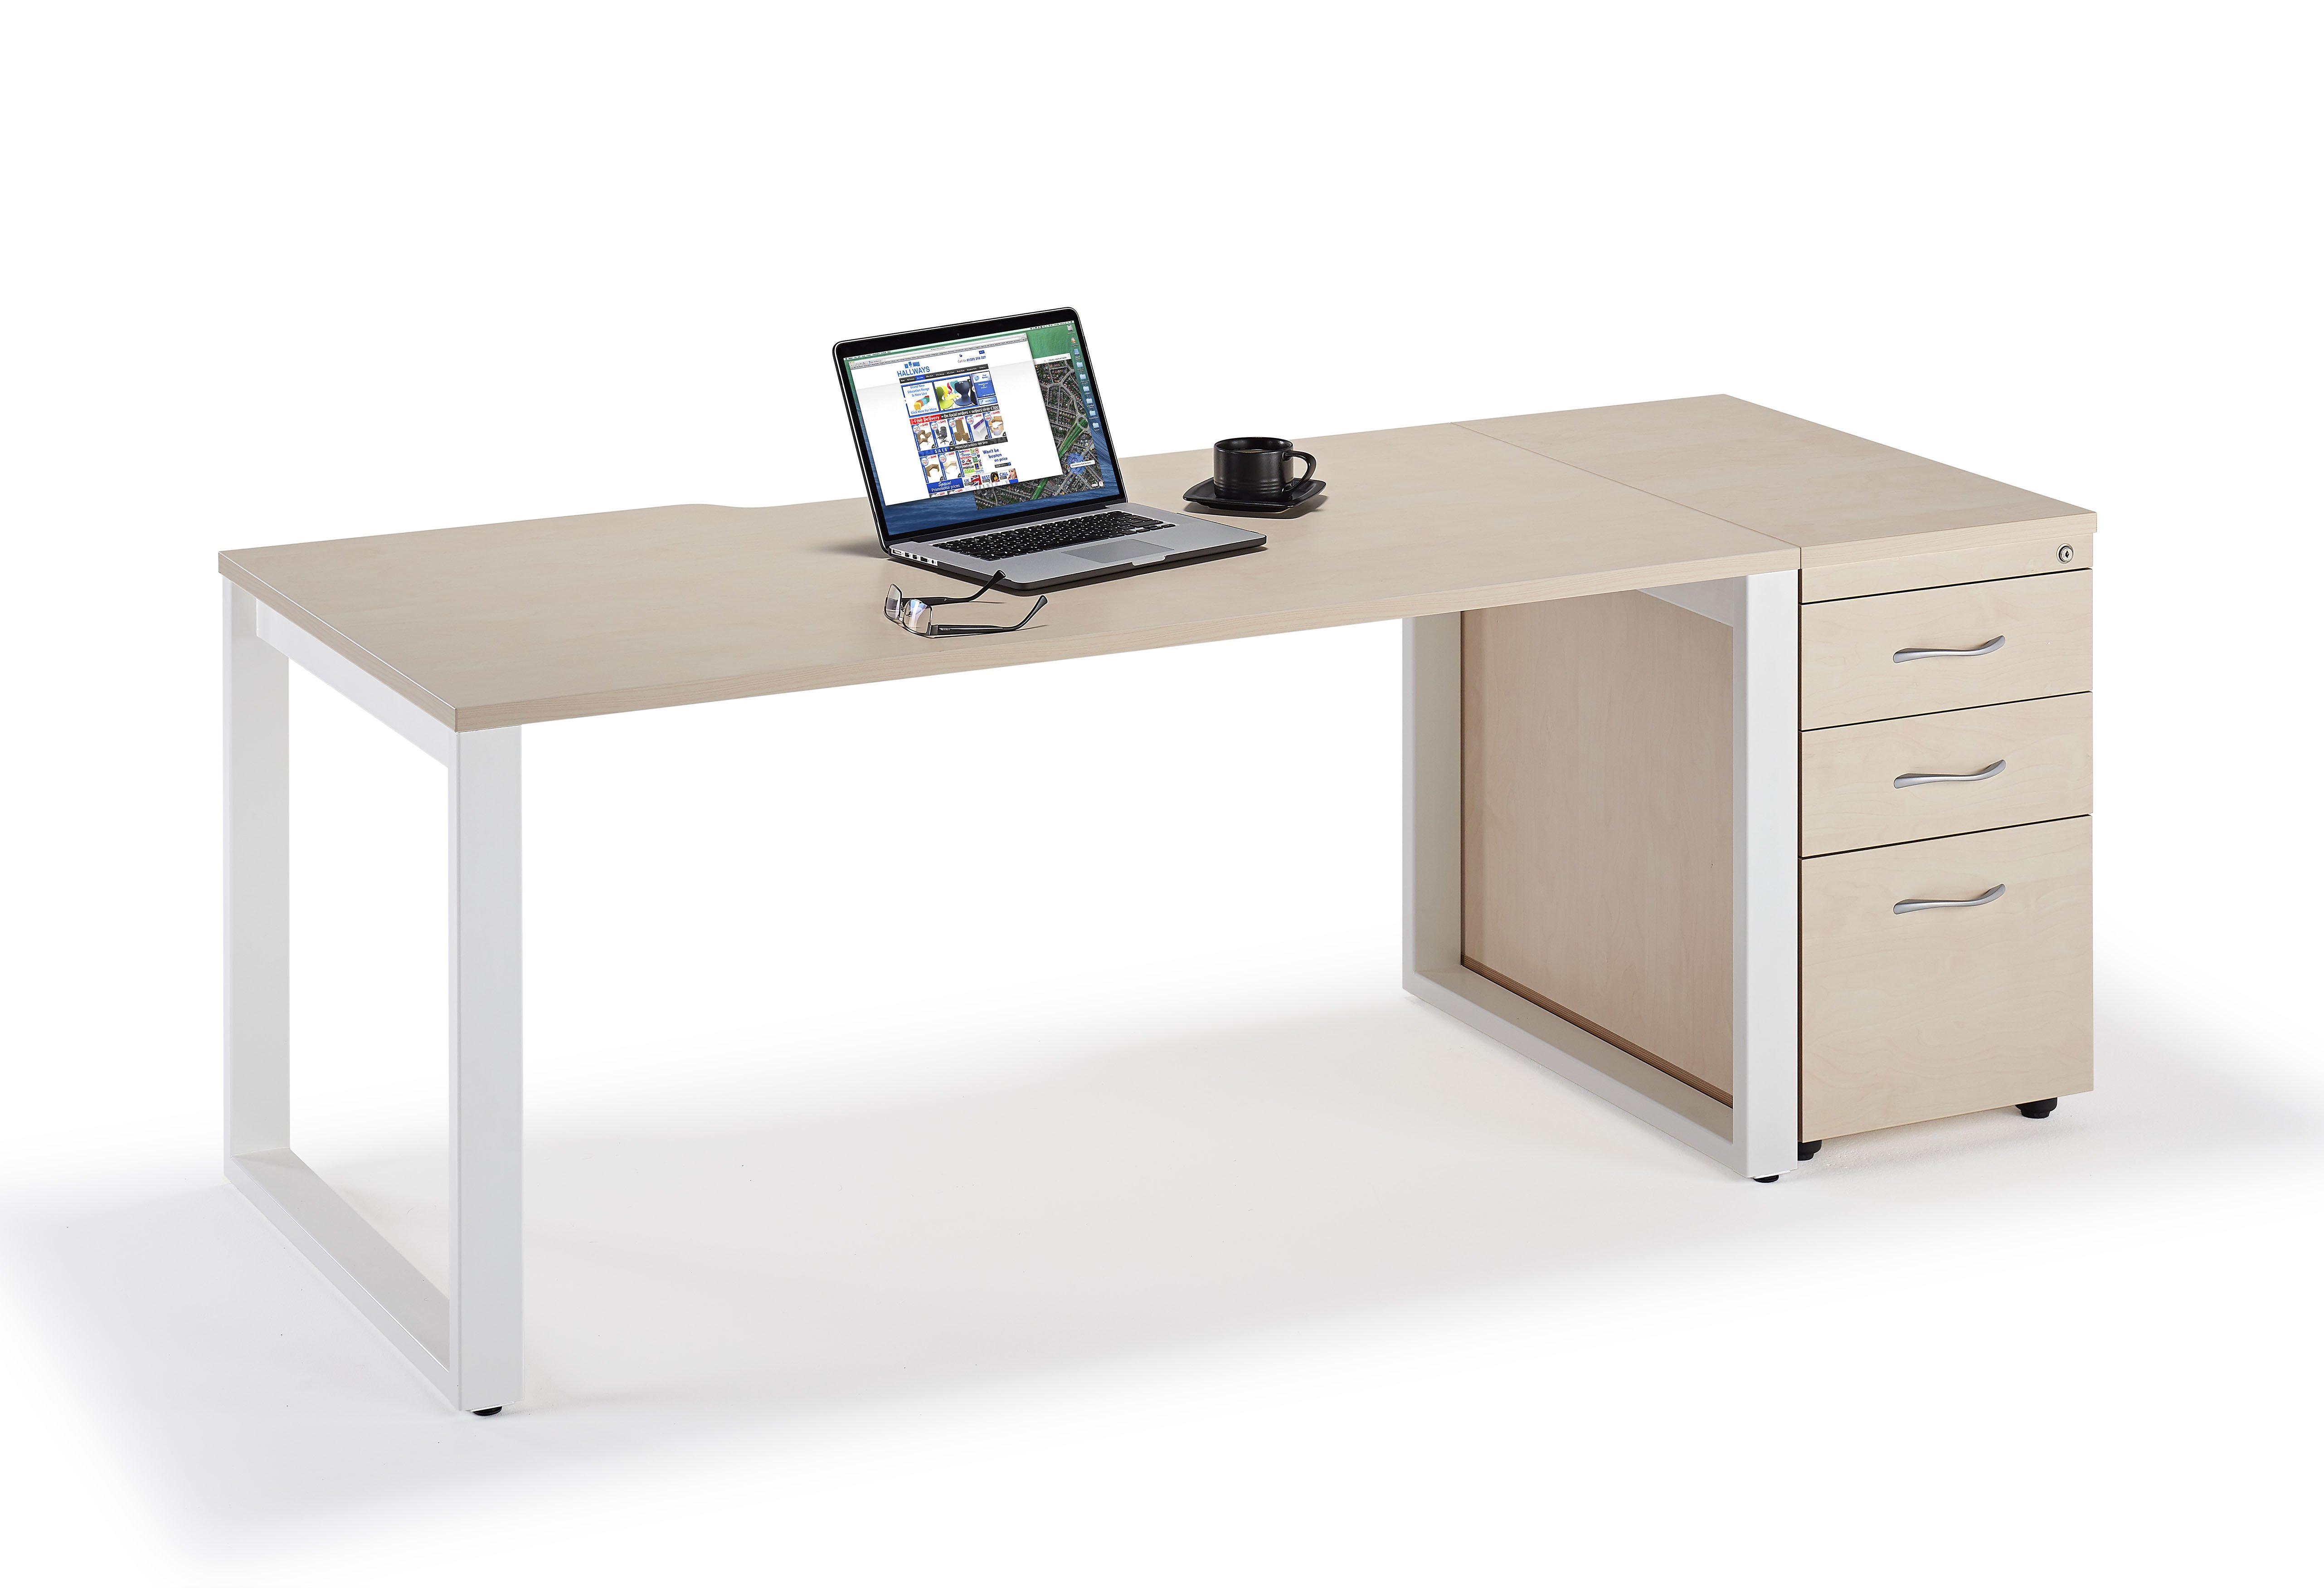 next day maple executive bench desk with box legs and desk